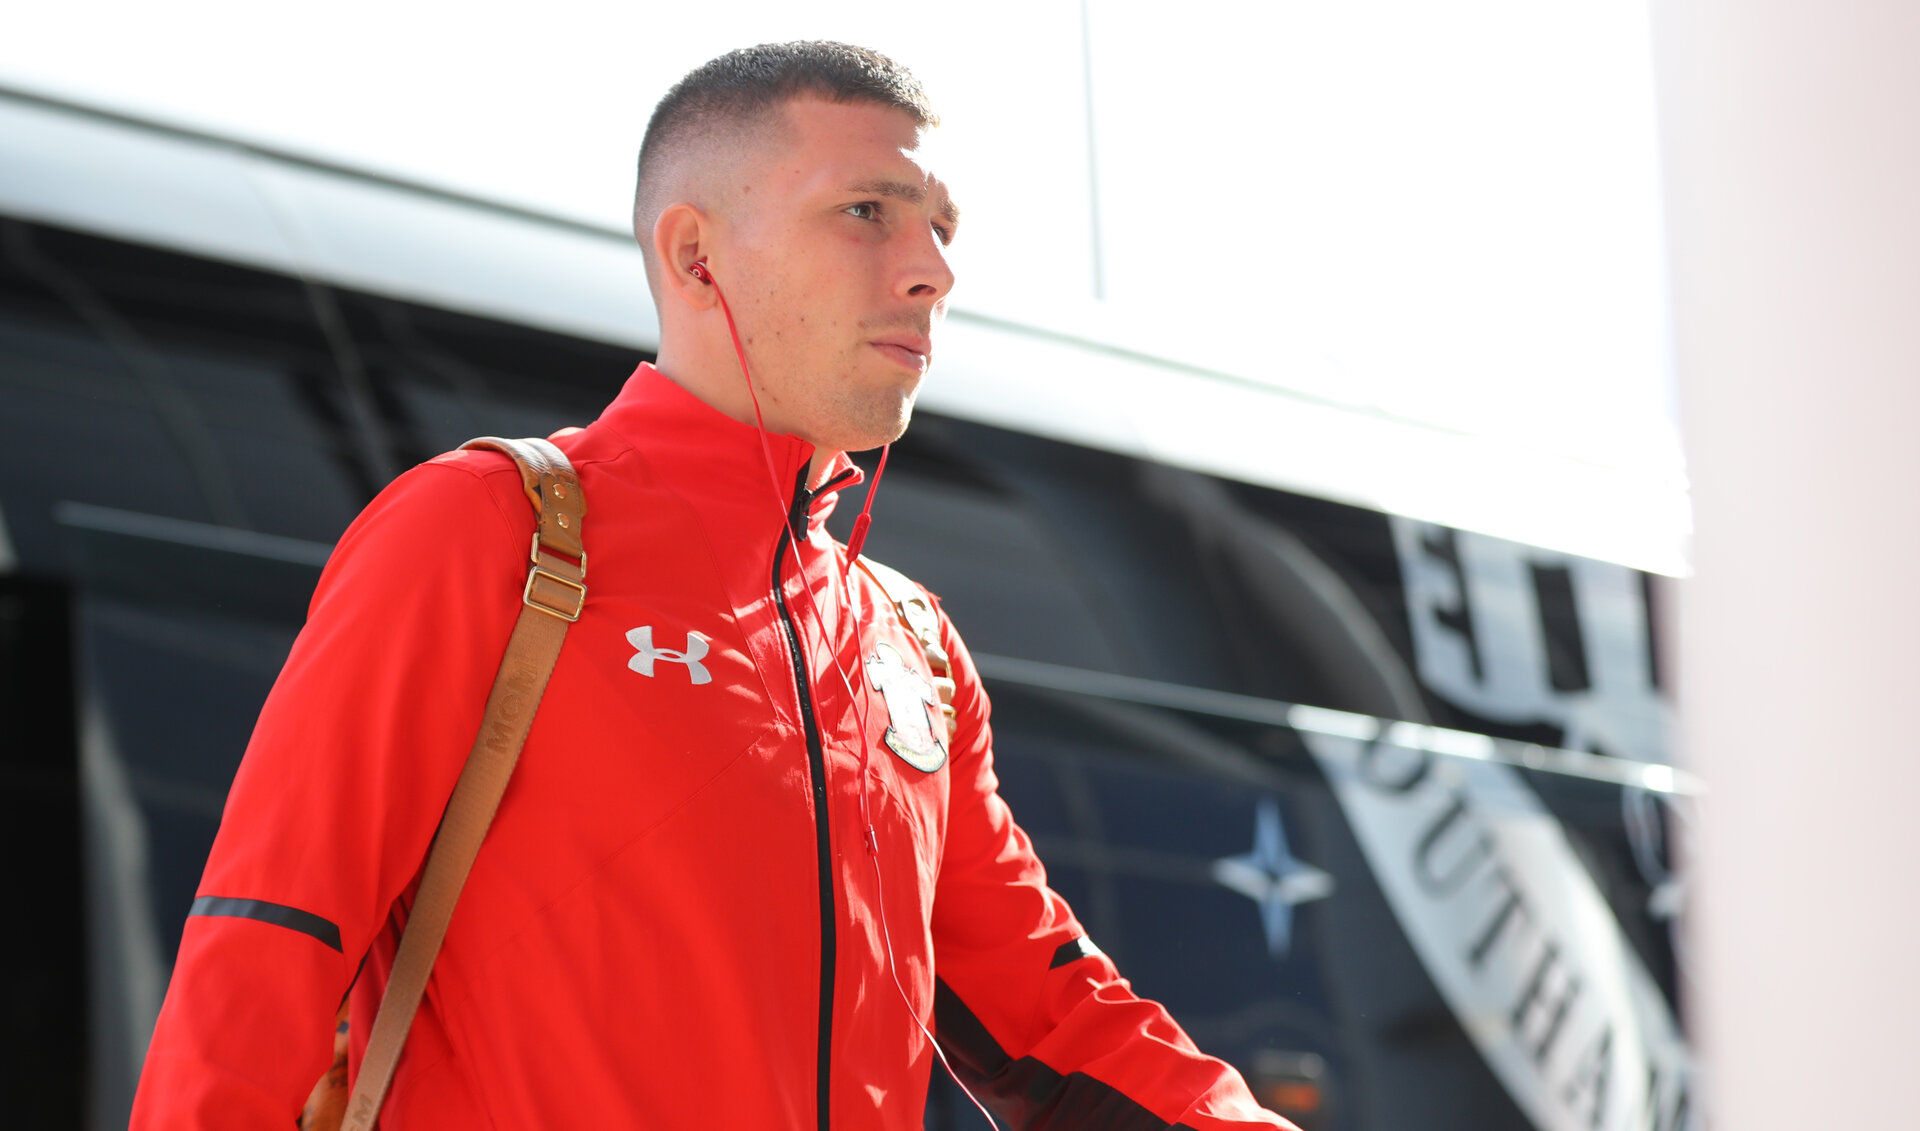 SOUTHAMPTON, ENGLAND - OCTOBER 07: Pierre-Emile Hojbjerg of Southampton ahead of the Premier League match between Southampton FC and Chelsea FC at St Mary's Stadium on October 7, 2018 in Southampton, United Kingdom. (Photo by Matt Watson/Southampton FC via Getty Images)